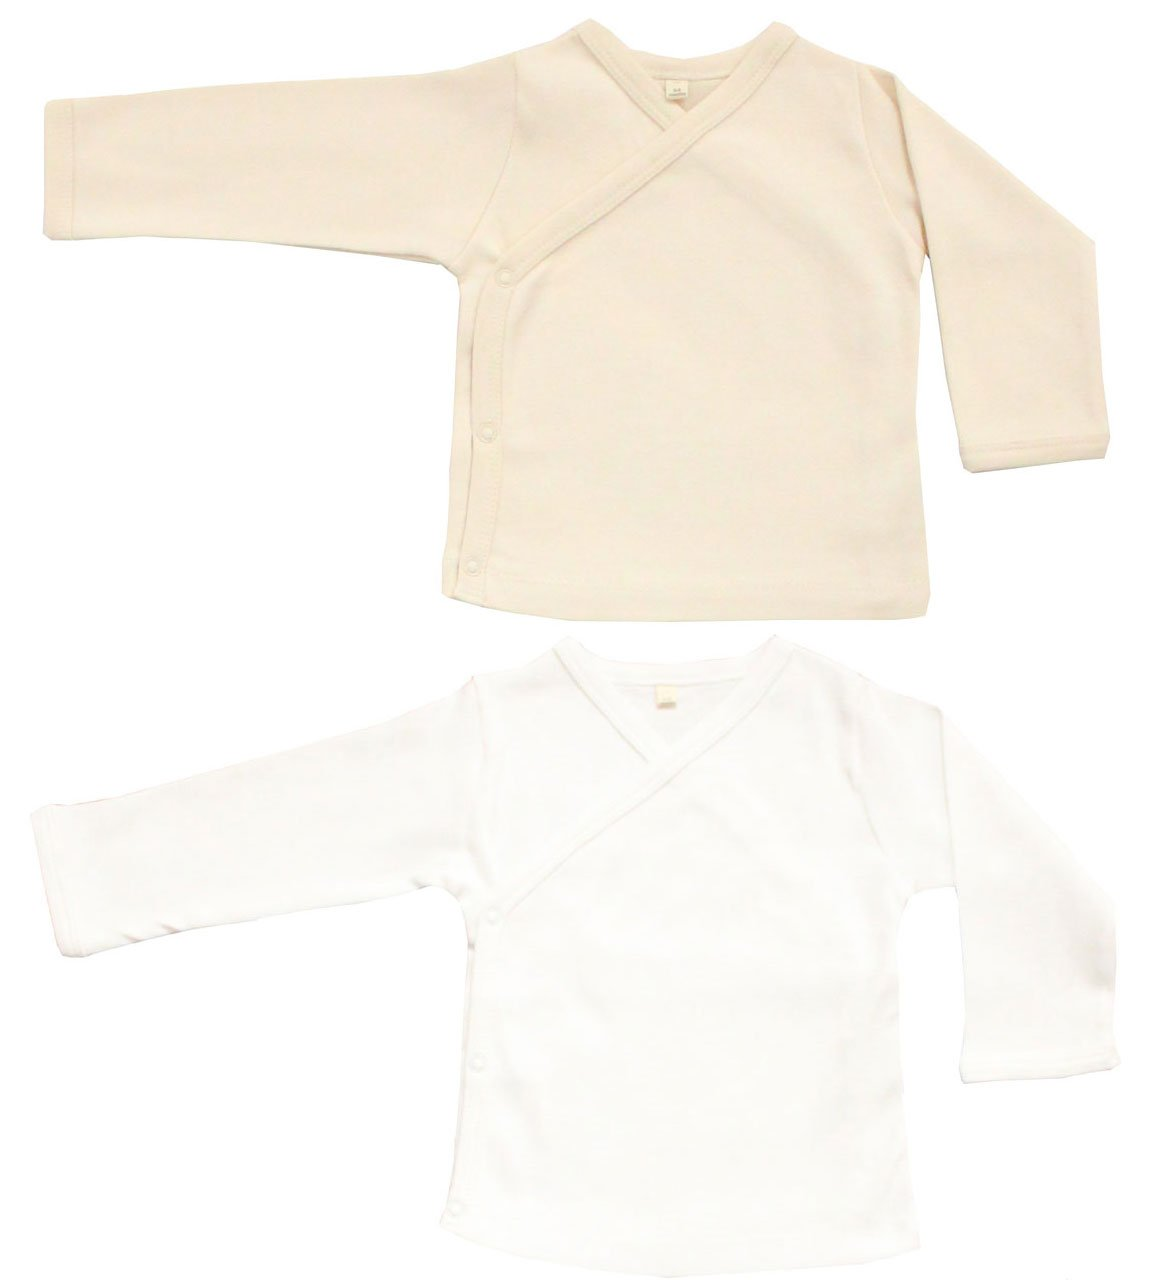 Maple Clothing Organic Cotton Baby Kimono GOTS Certified (2 Pack, White/Natural, 3-6m)